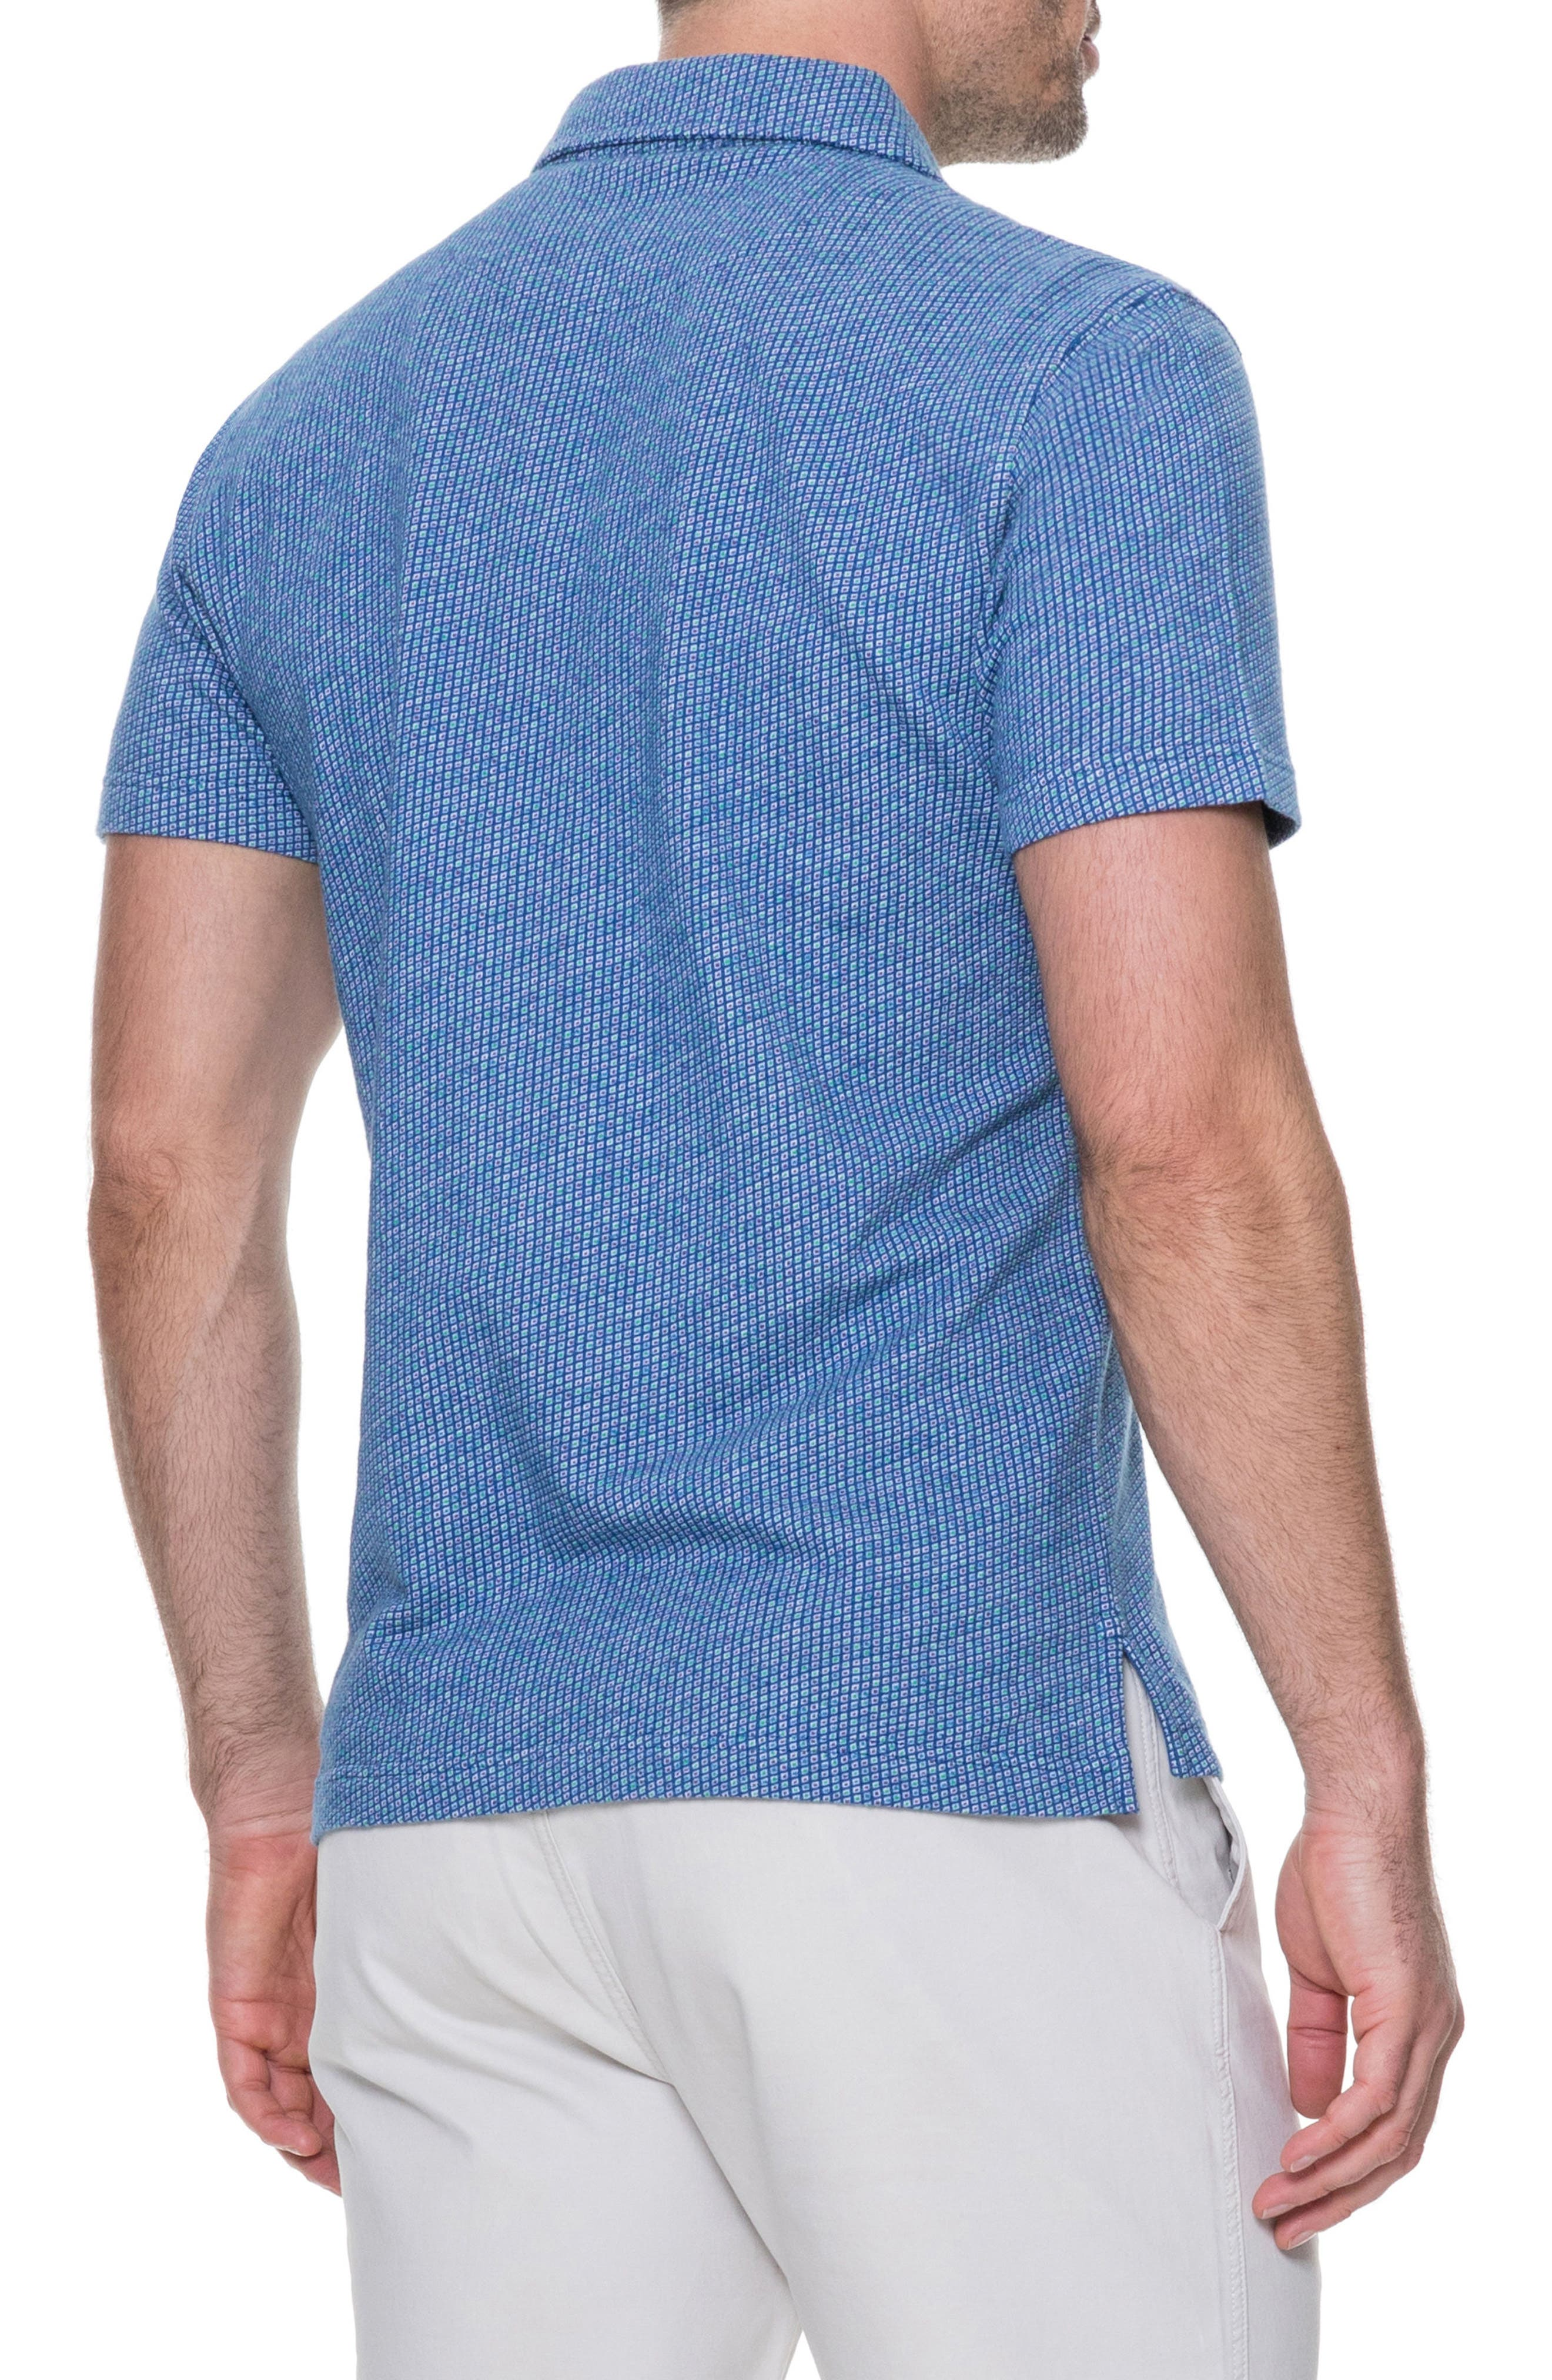 Thoms Bay Sports Fit Polo,                             Alternate thumbnail 2, color,                             423